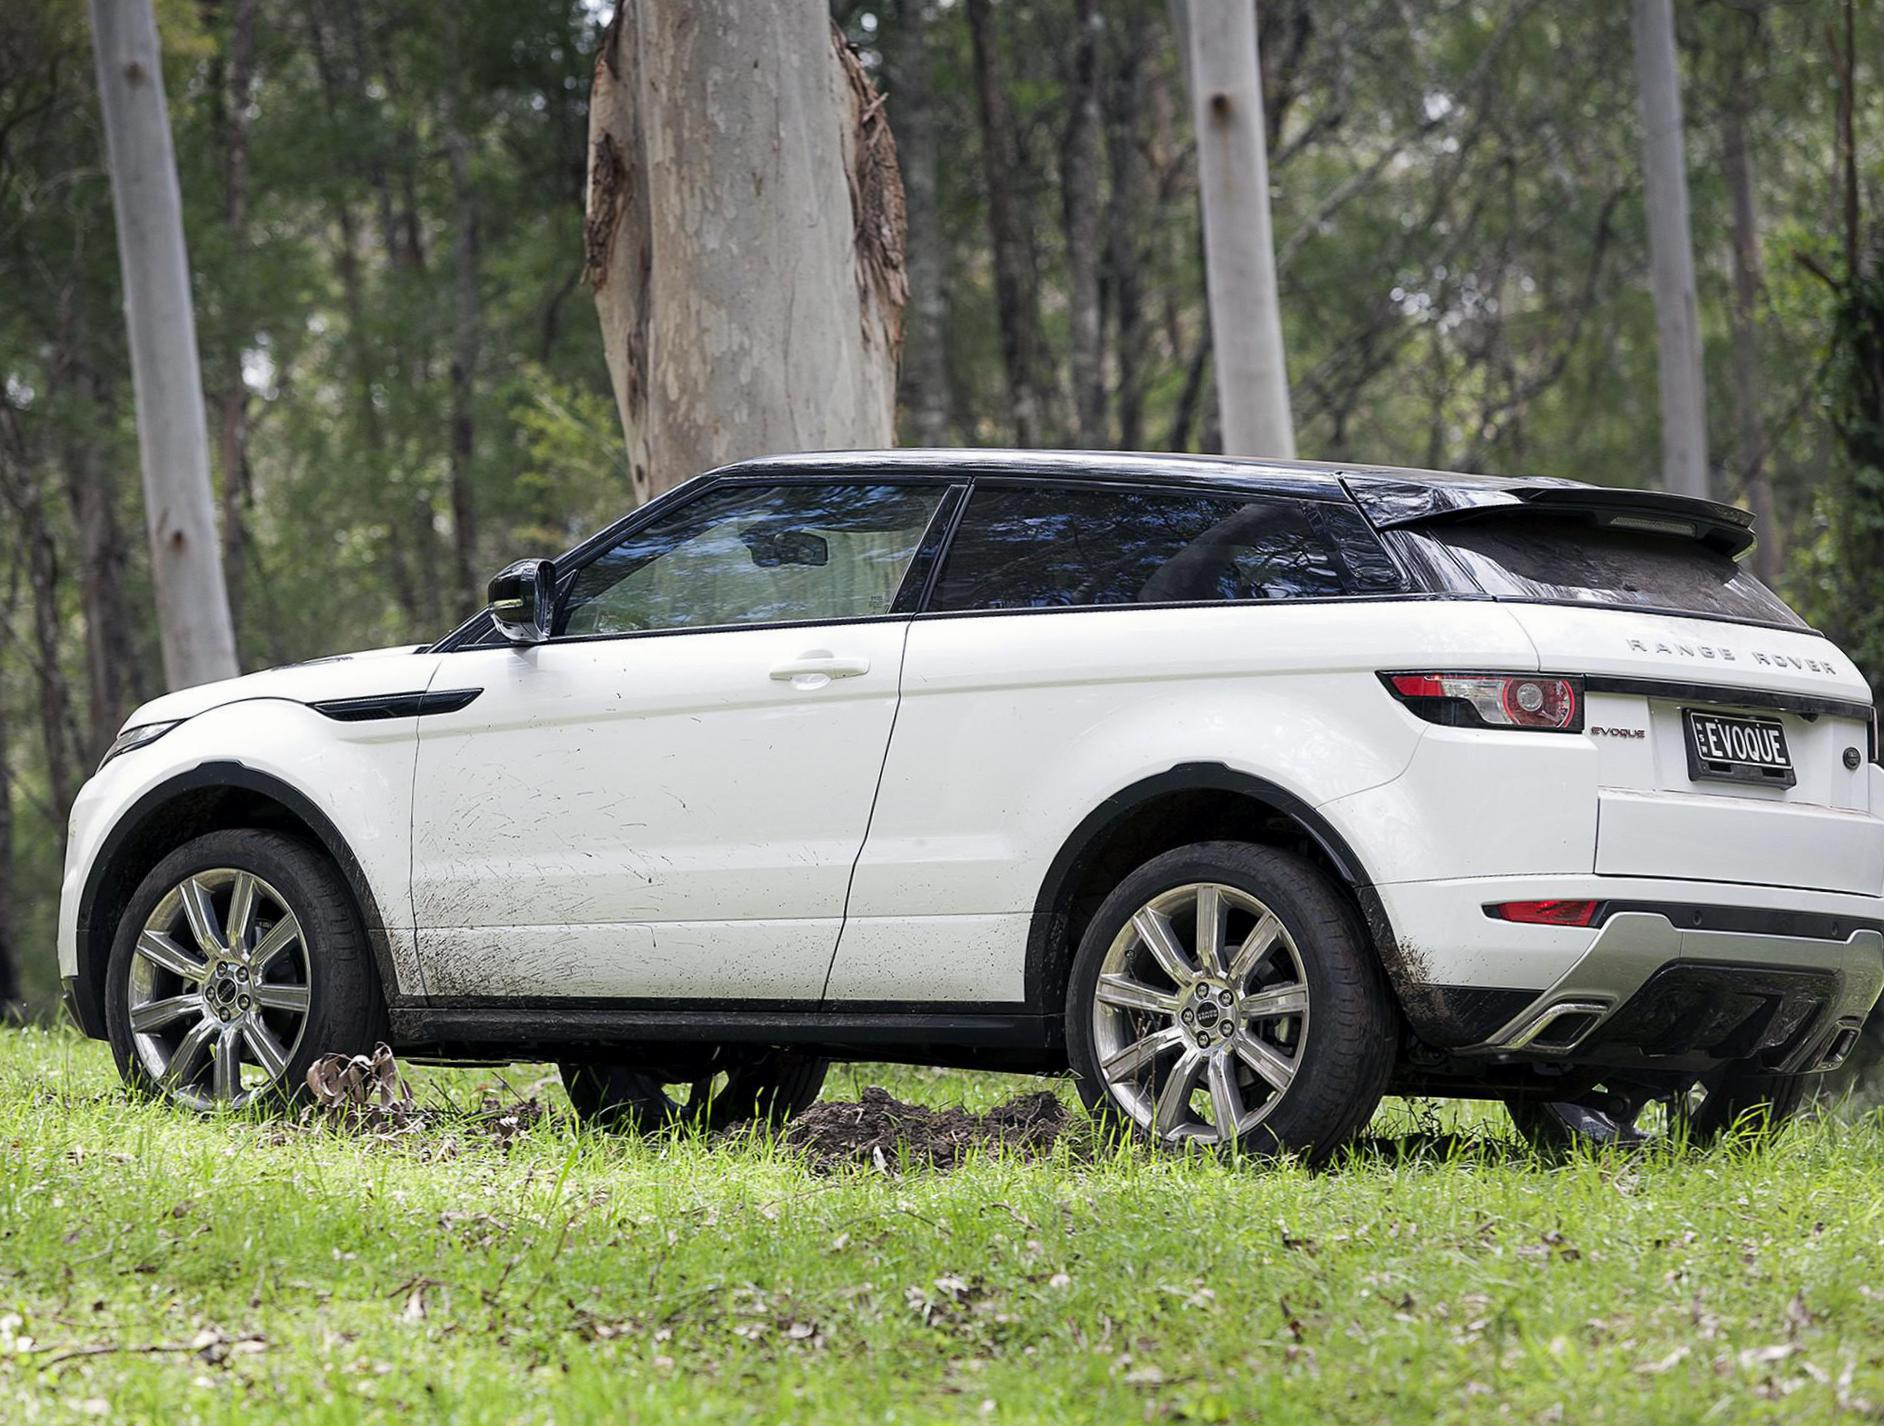 Range Rover Evoque Land Rover approved 2007